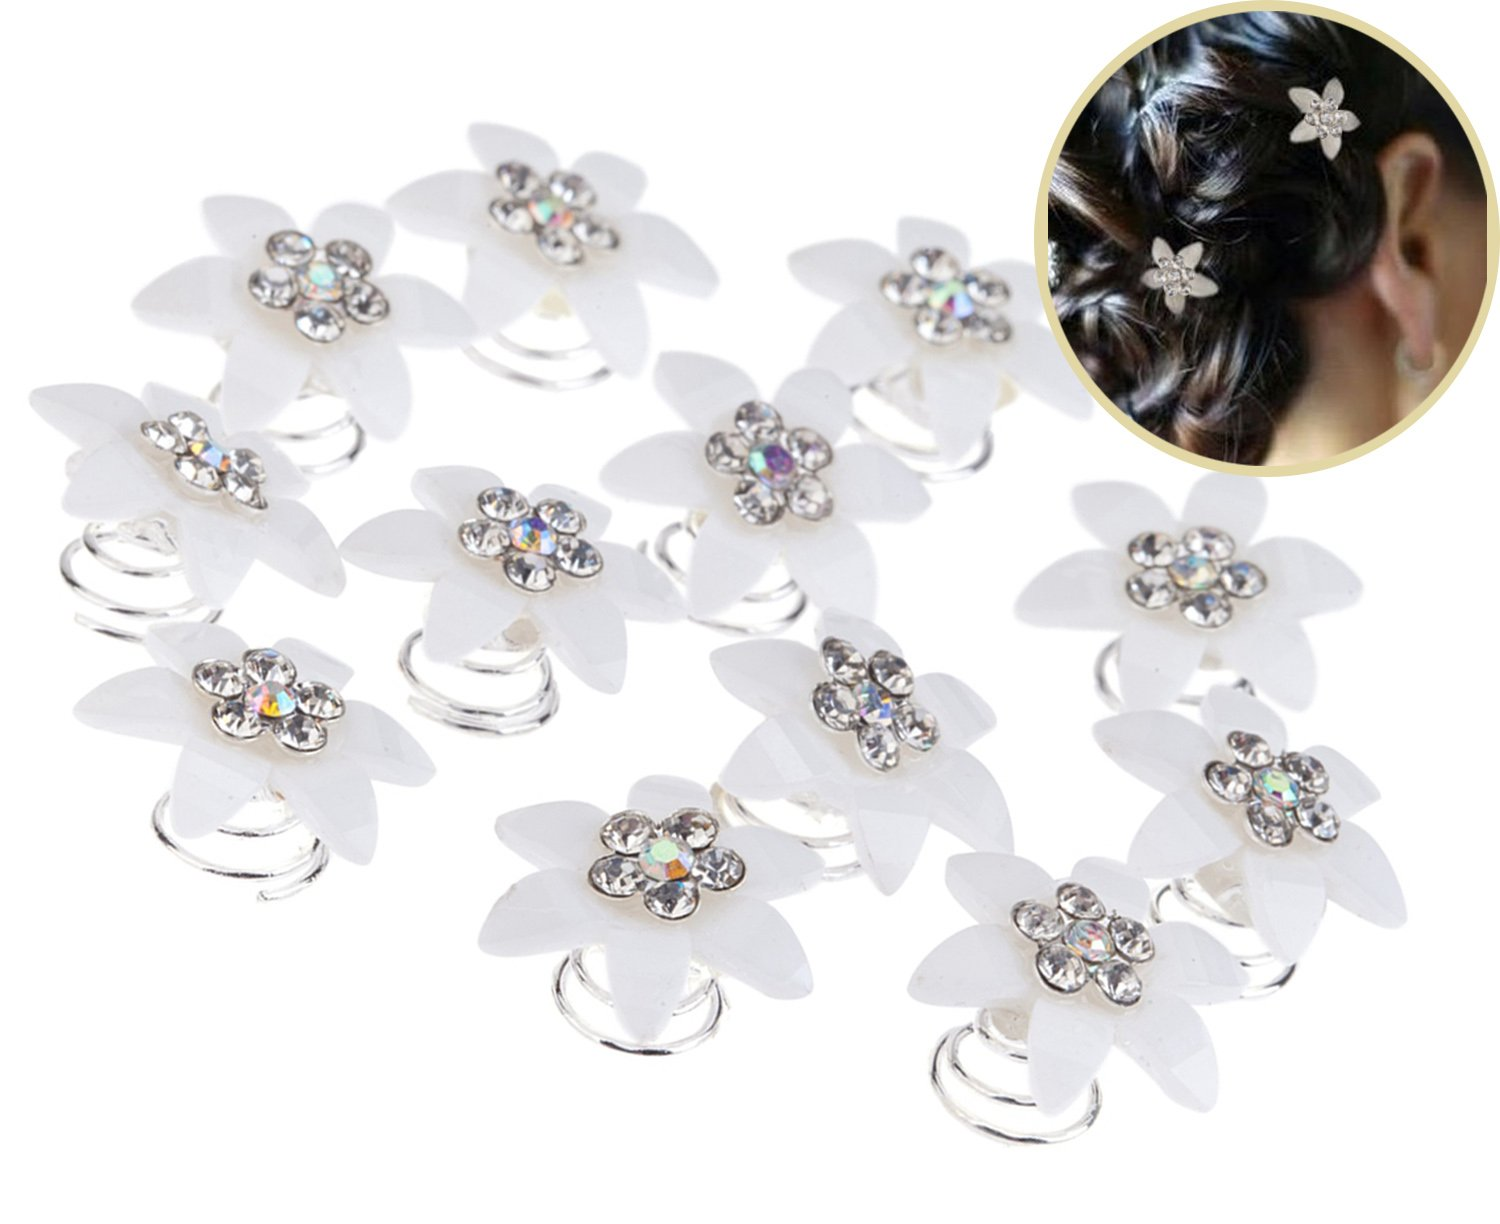 Set Kit of Gorgeous Weddings / Proms / Balls Hair Decorations With 12pcs Silver Coloured Spirals / Twists / Twisted Pins / Clips / Curlies In White Acrylic Flowers Shapes Studded With Clear Rhinestones / Crystals / Gemstones By VAGA®